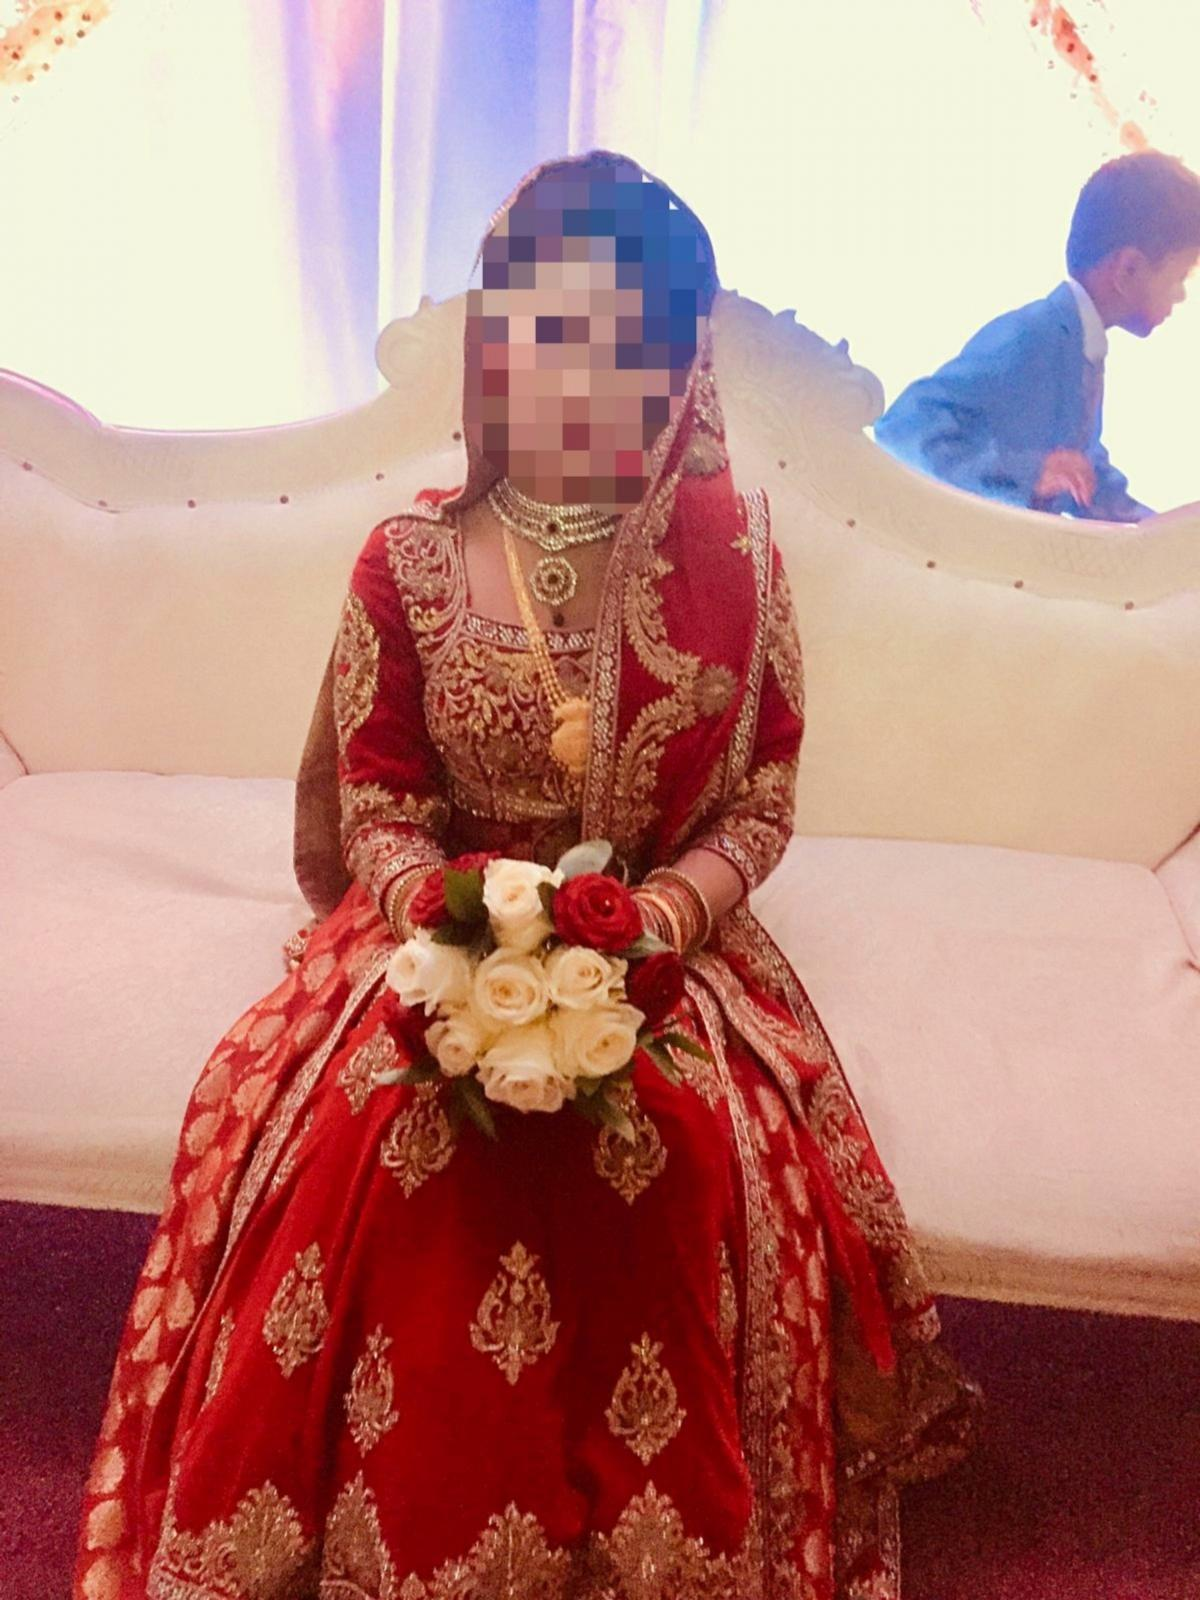 Indian Wedding Outfit For Sale In Se18 Greenwich For 850 00 For Sale Shpock,Spring Wedding Guest Dresses 2019